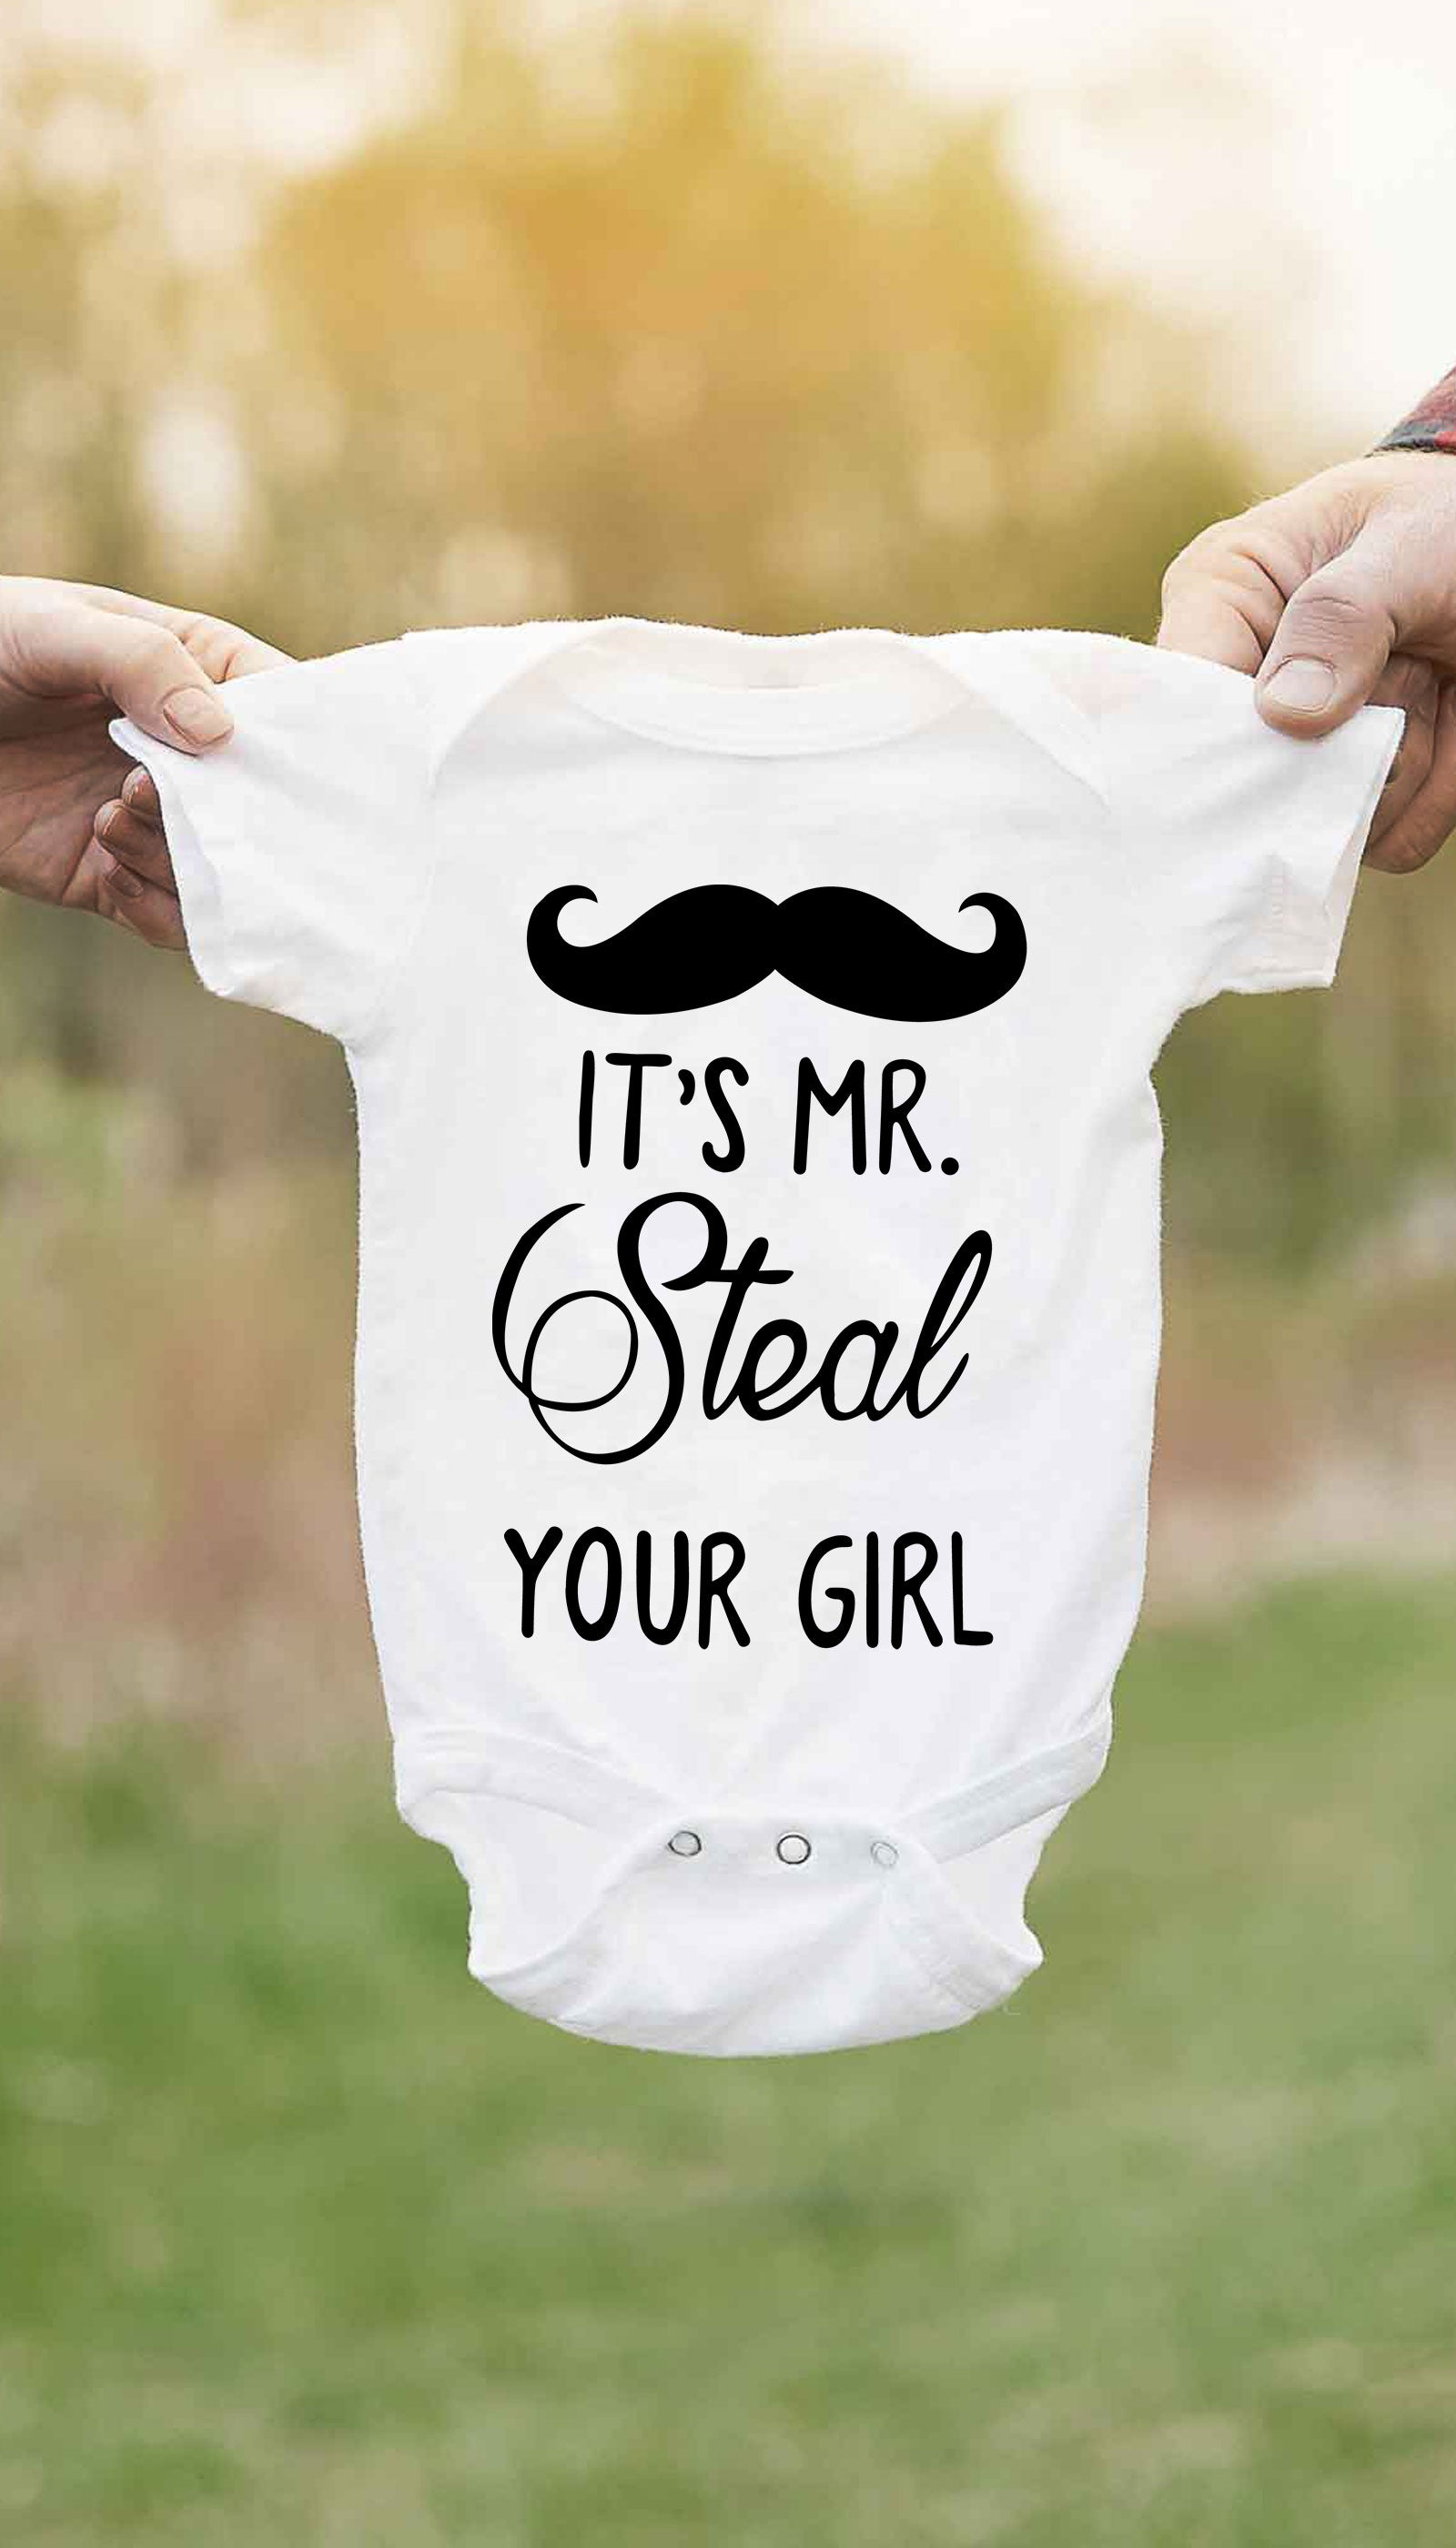 It's Mr. Steal Your Girl Cute & Funny Baby Infant Onesie | Sarcastic ME